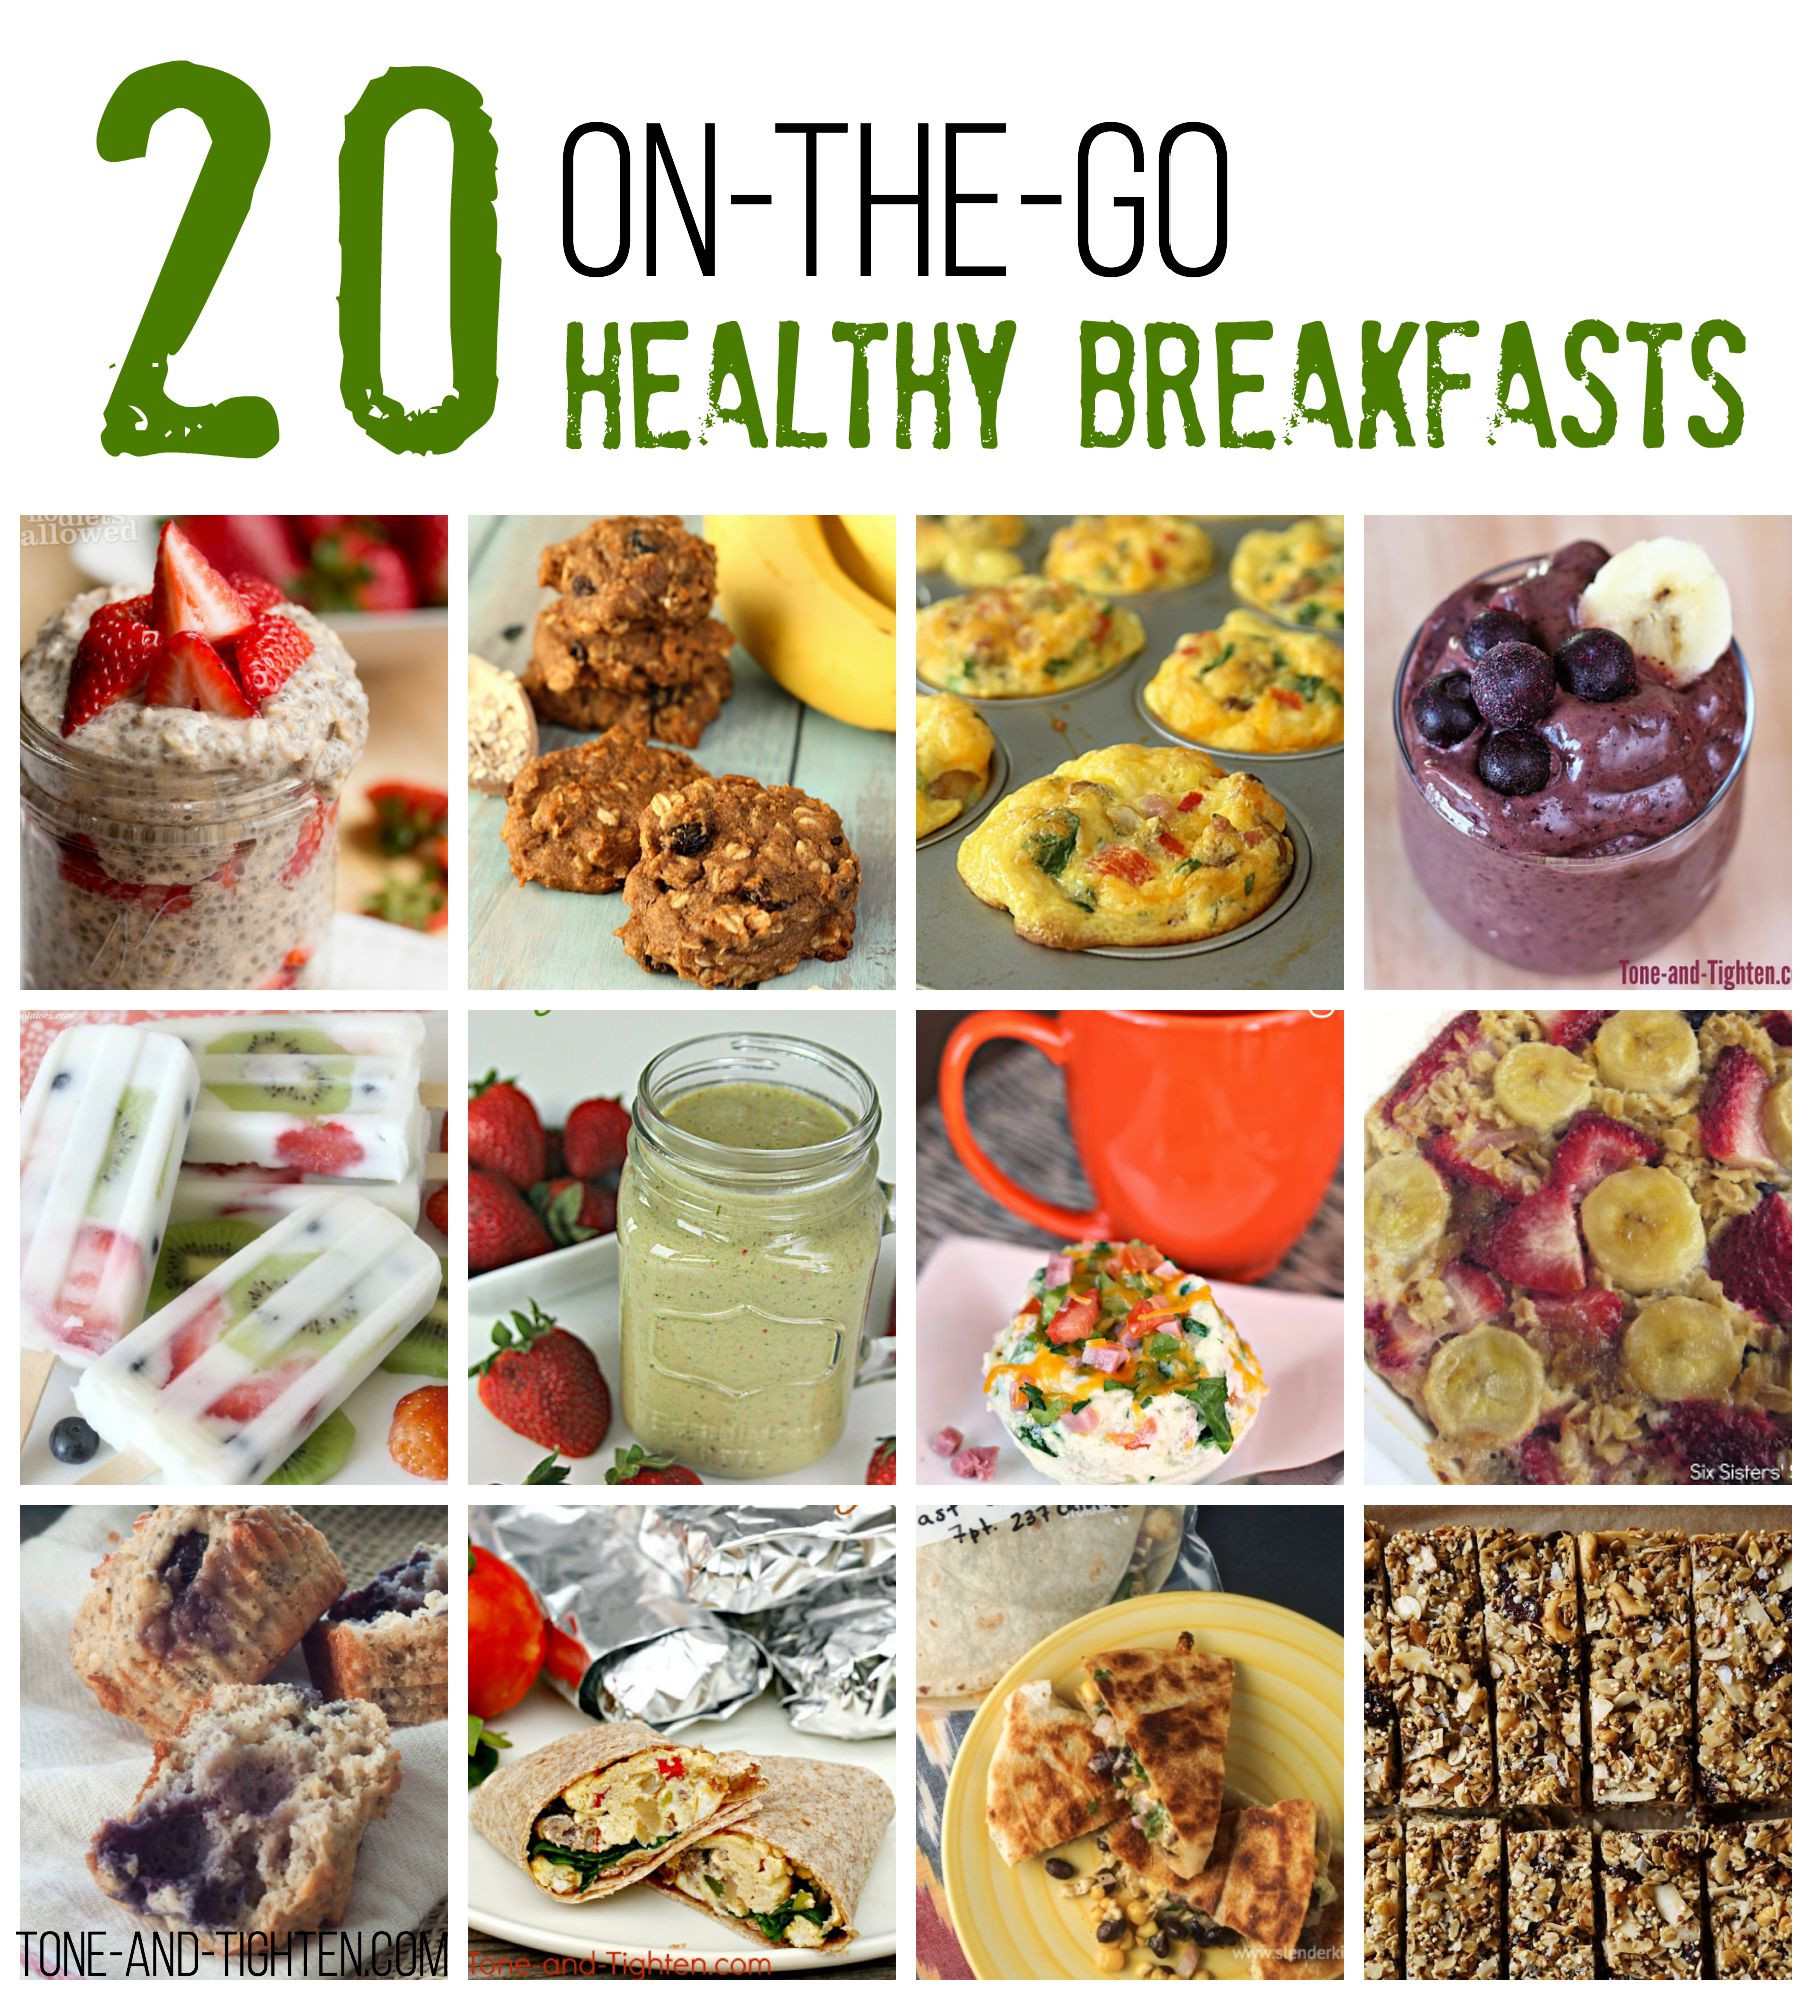 Healthy Breakfast On The Go Recipes  20 The Go Healthy Breakfast Recipes